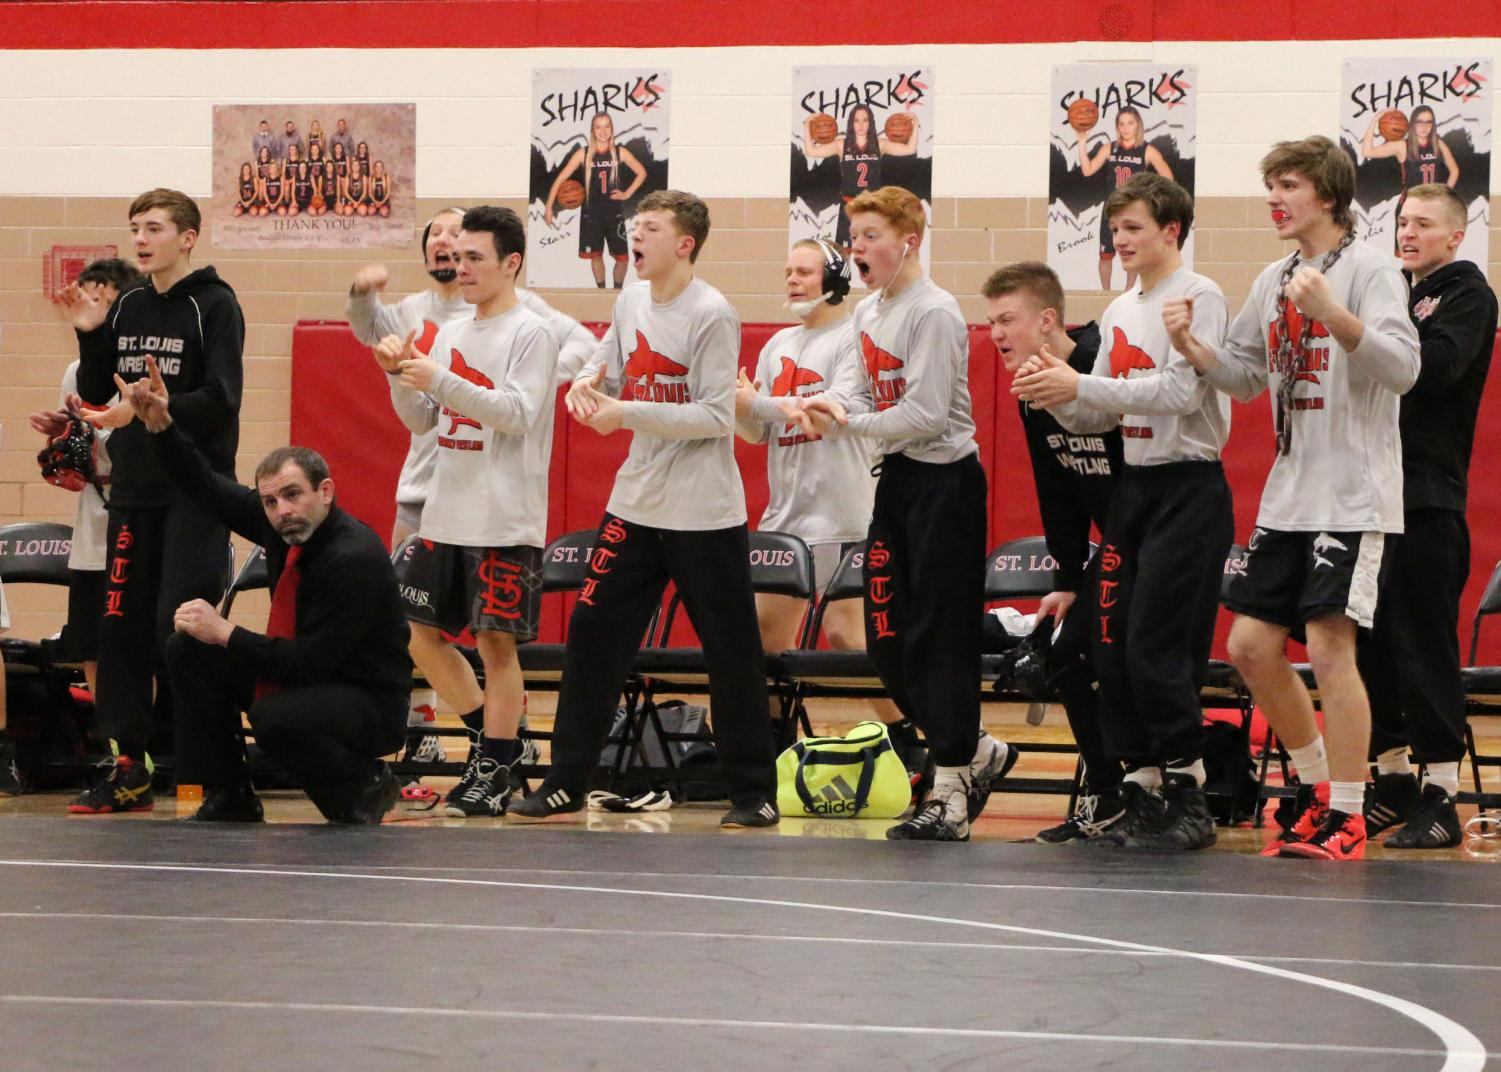 Members of the 2018 Shark wrestling team celebrate during the district finals against Montabella.